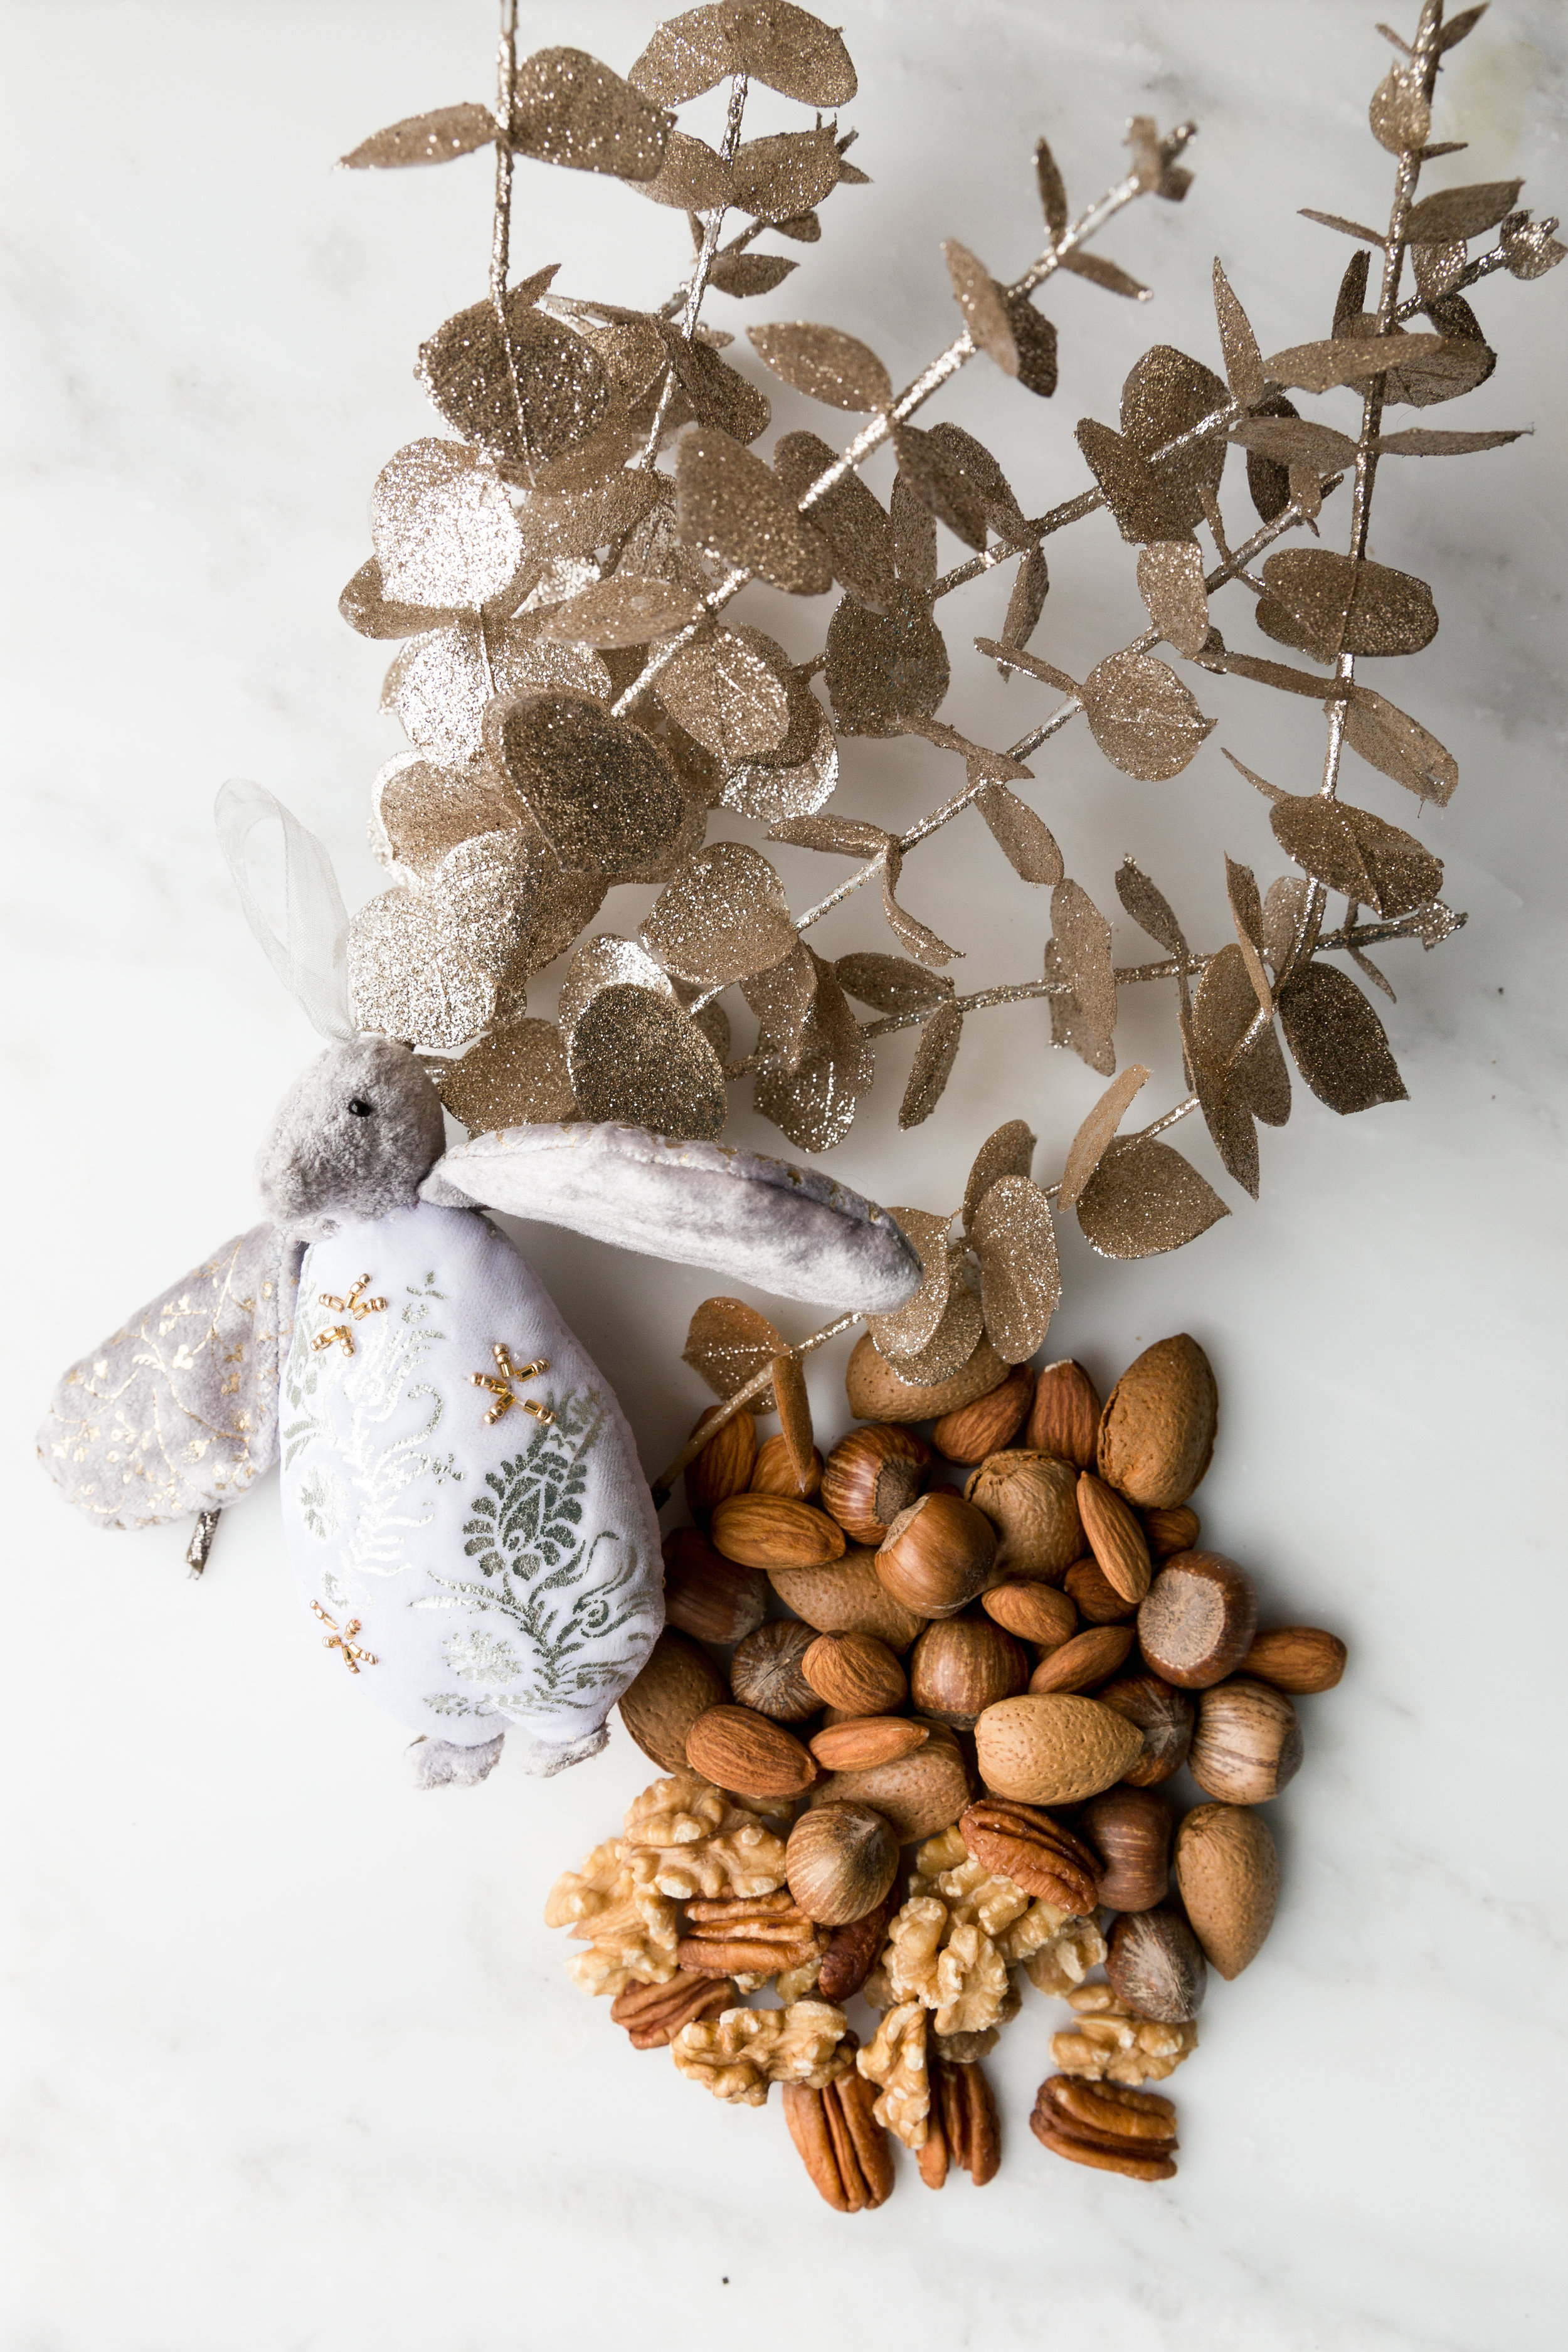 4 NUTS PROMOTE REGENERATION OF SKIN CELLS - DECEMBER 01, 2017If you want to have a perfect skin this Christmas, you're lucky because it's nuts season. Hurrah!ALMONDS are packed full of fiber, protein and essential fatty acids are a natural anti-inflammatory, so they also can help treat skin disorders such as acne, psoriasis and eczema